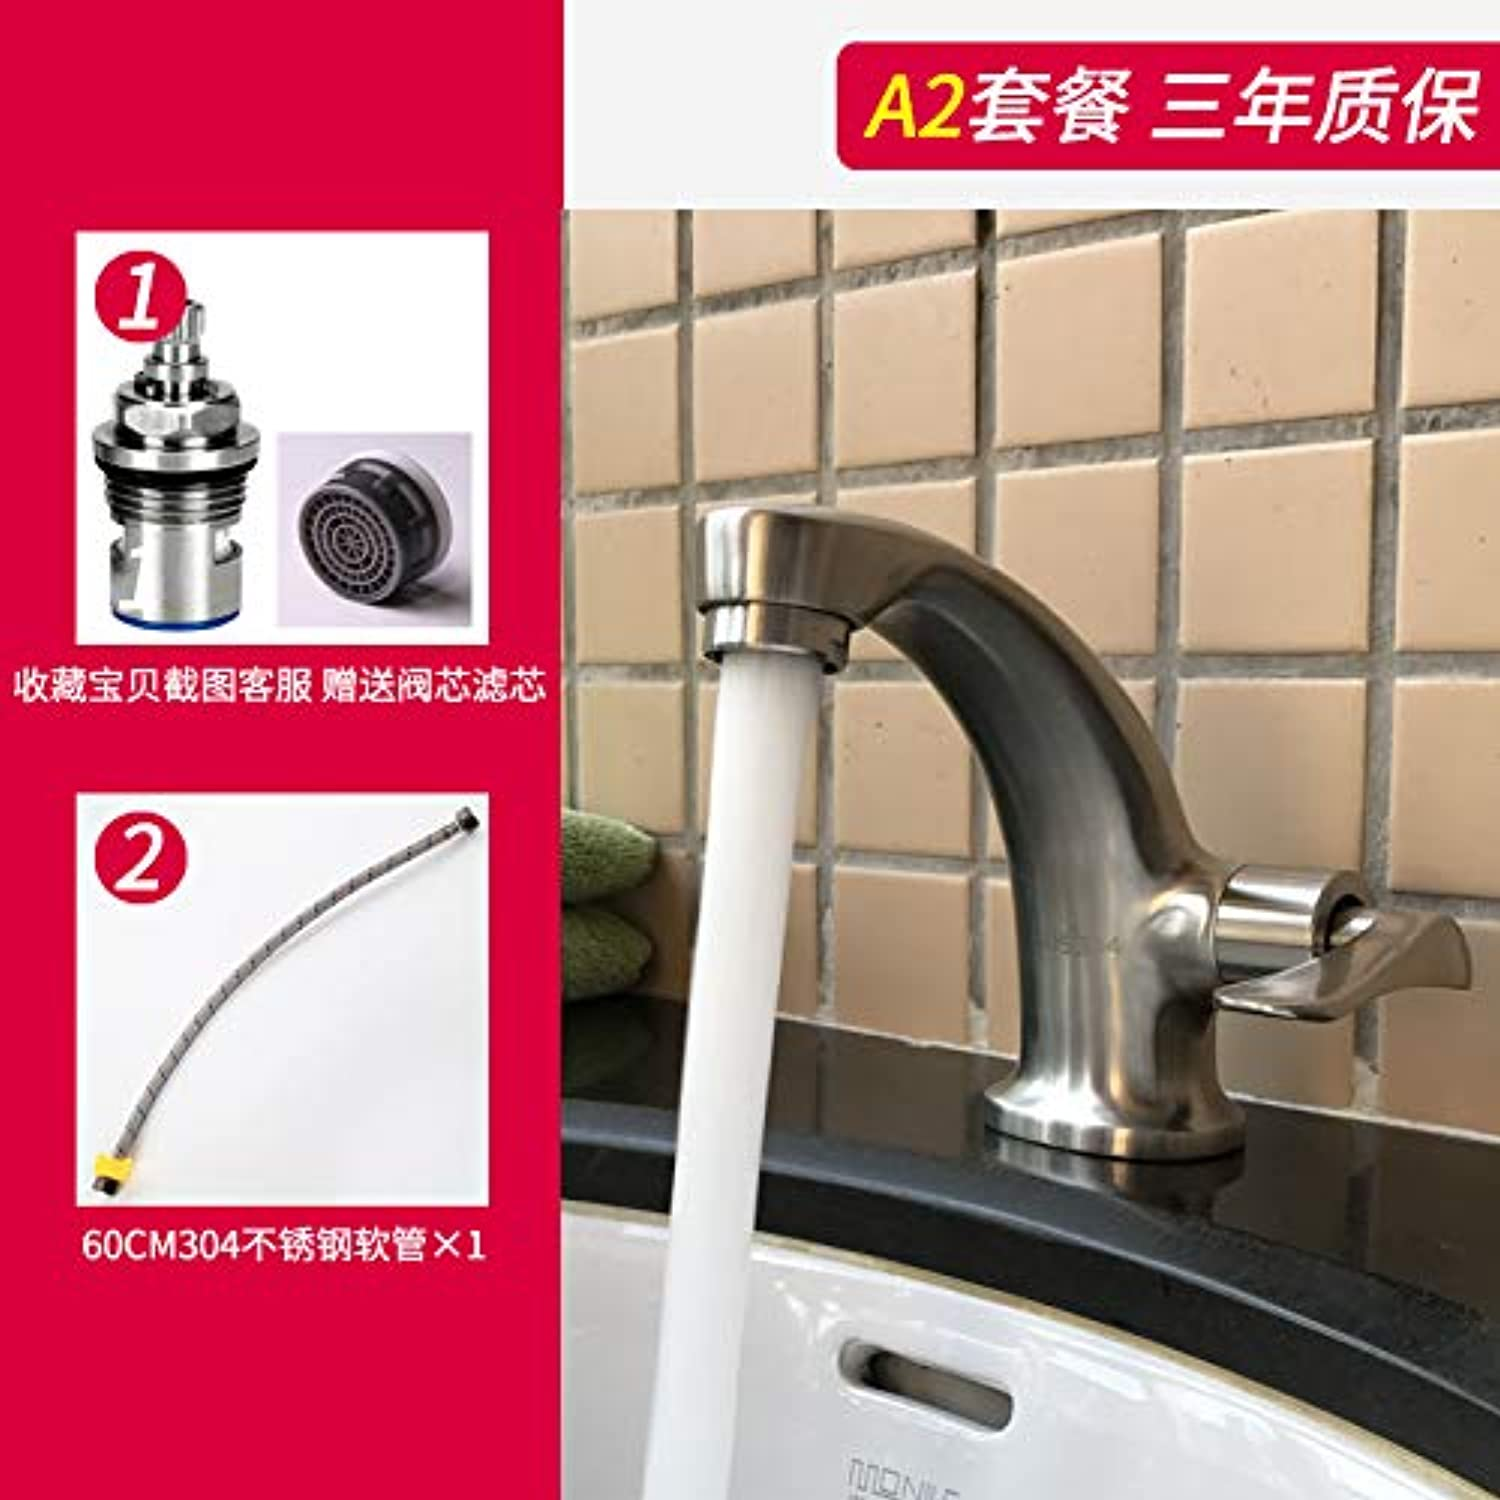 JWLT faucets Export Sharp Goods 304 Stainless Steel Basin Faucet Single Cold Hand Washing Dish Balcony Creative Faucet Without Lead,A2